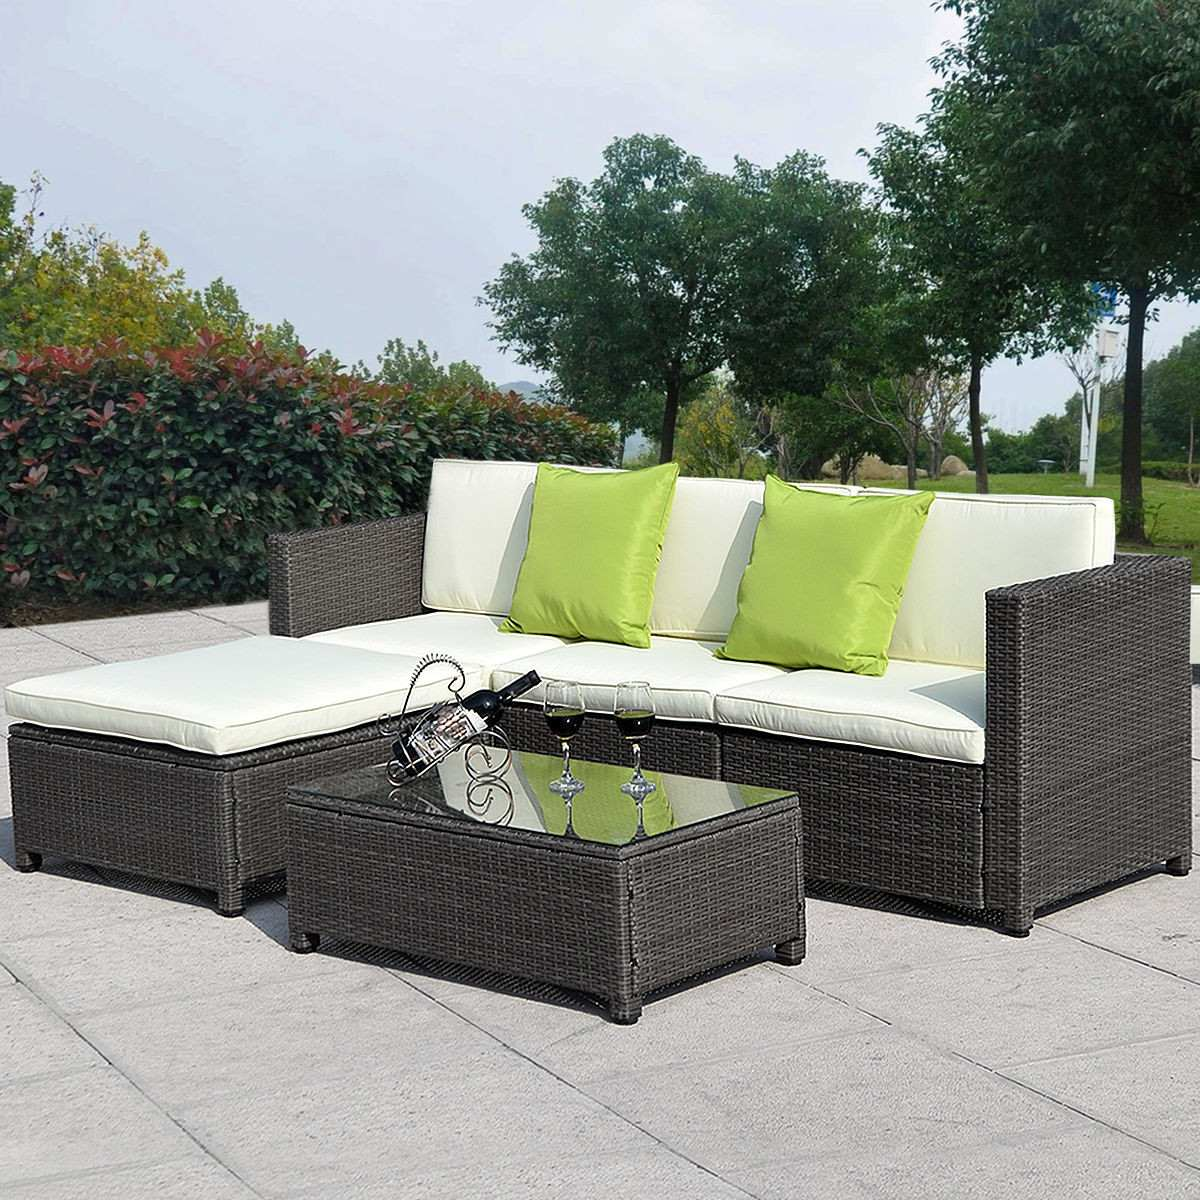 Muebles de ratan para jardin set 15 en mercado for Muebles ratan jardin